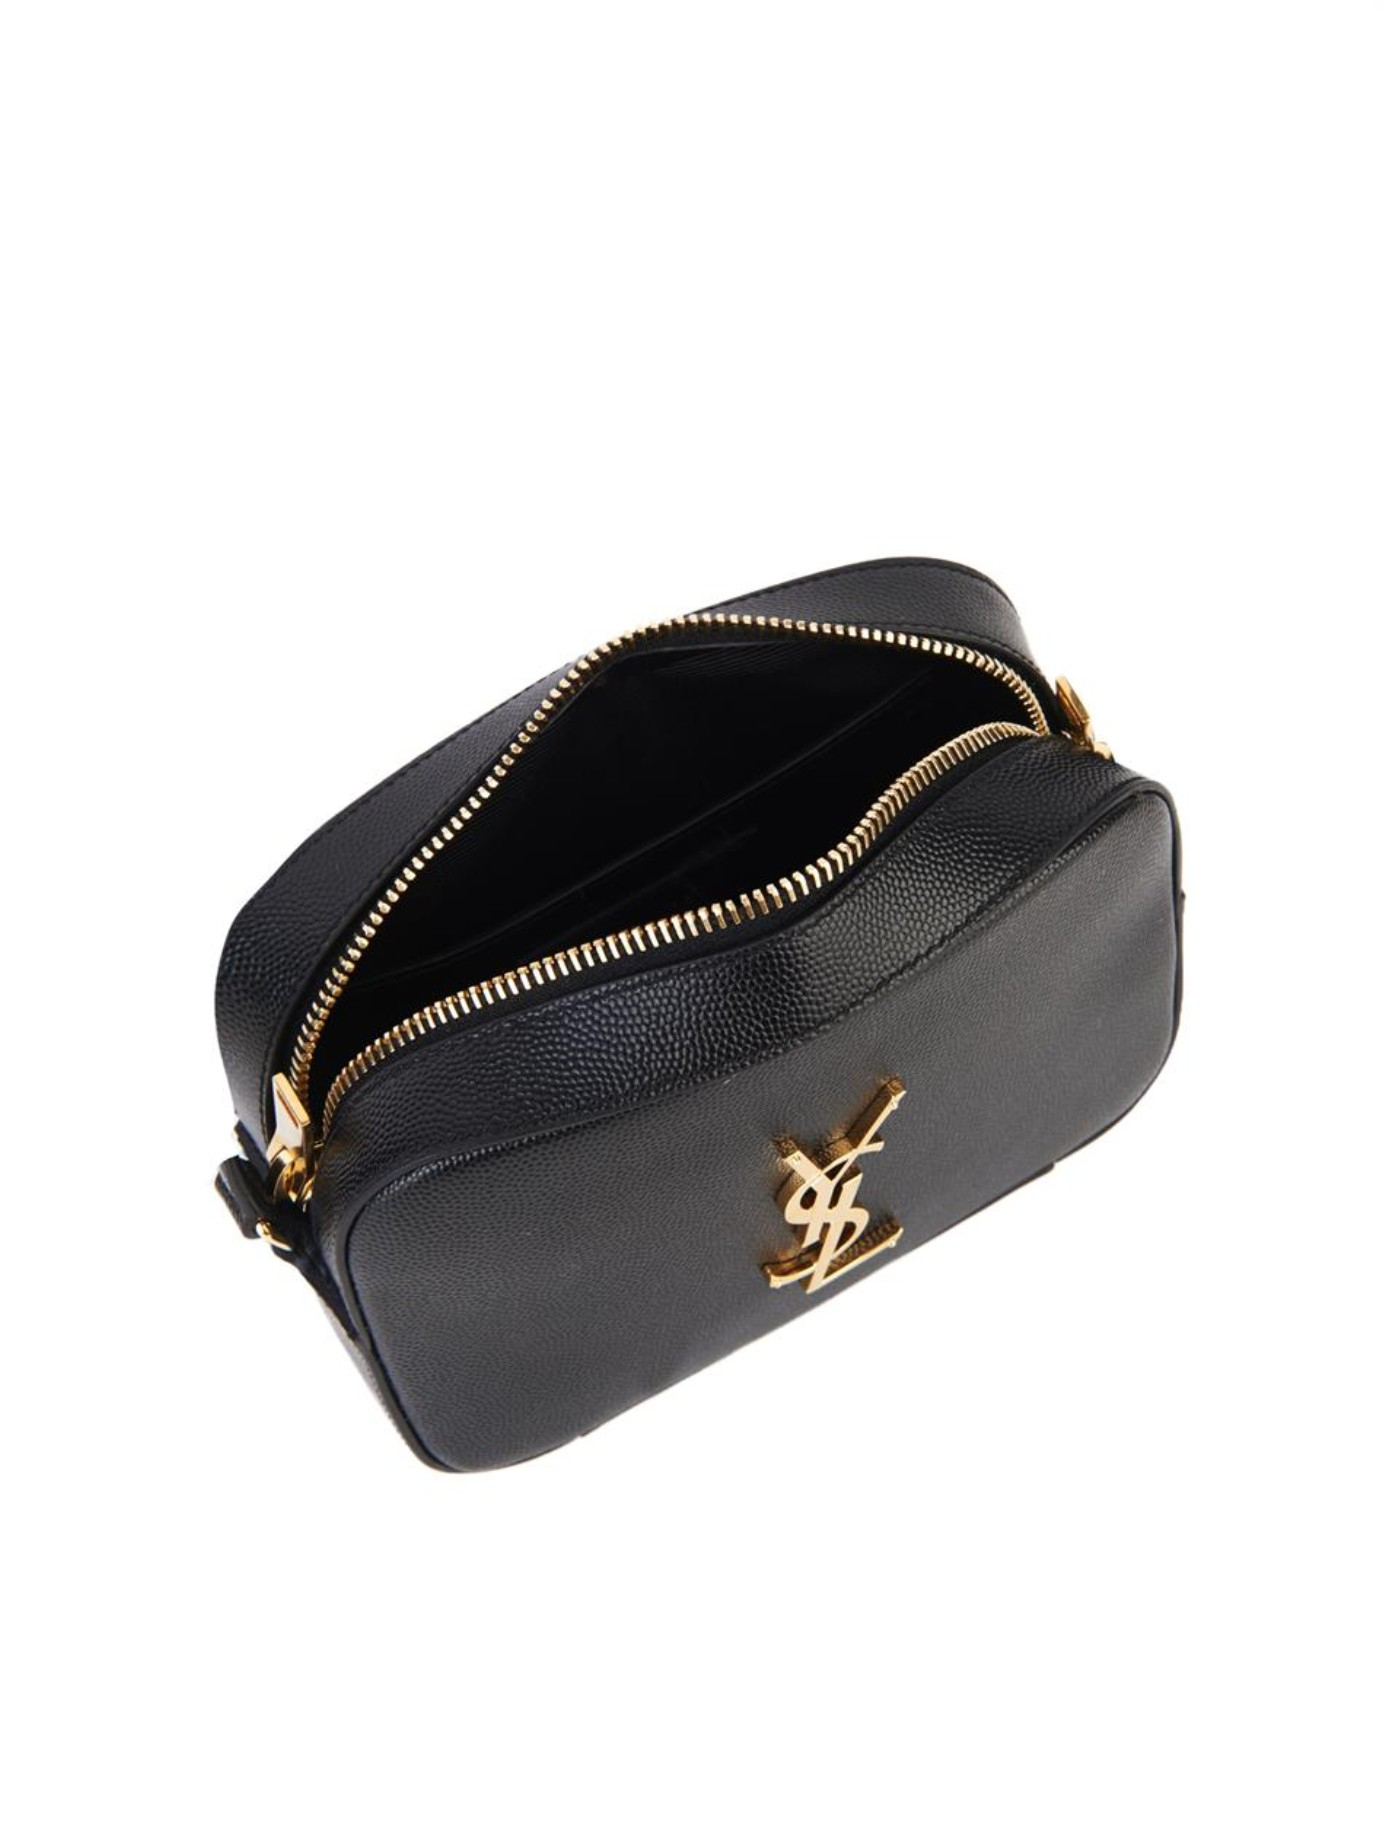 99db9f8368 ... ysl handbag sale uk - saint laurent classic small monogram saint laurent  camera bag in .